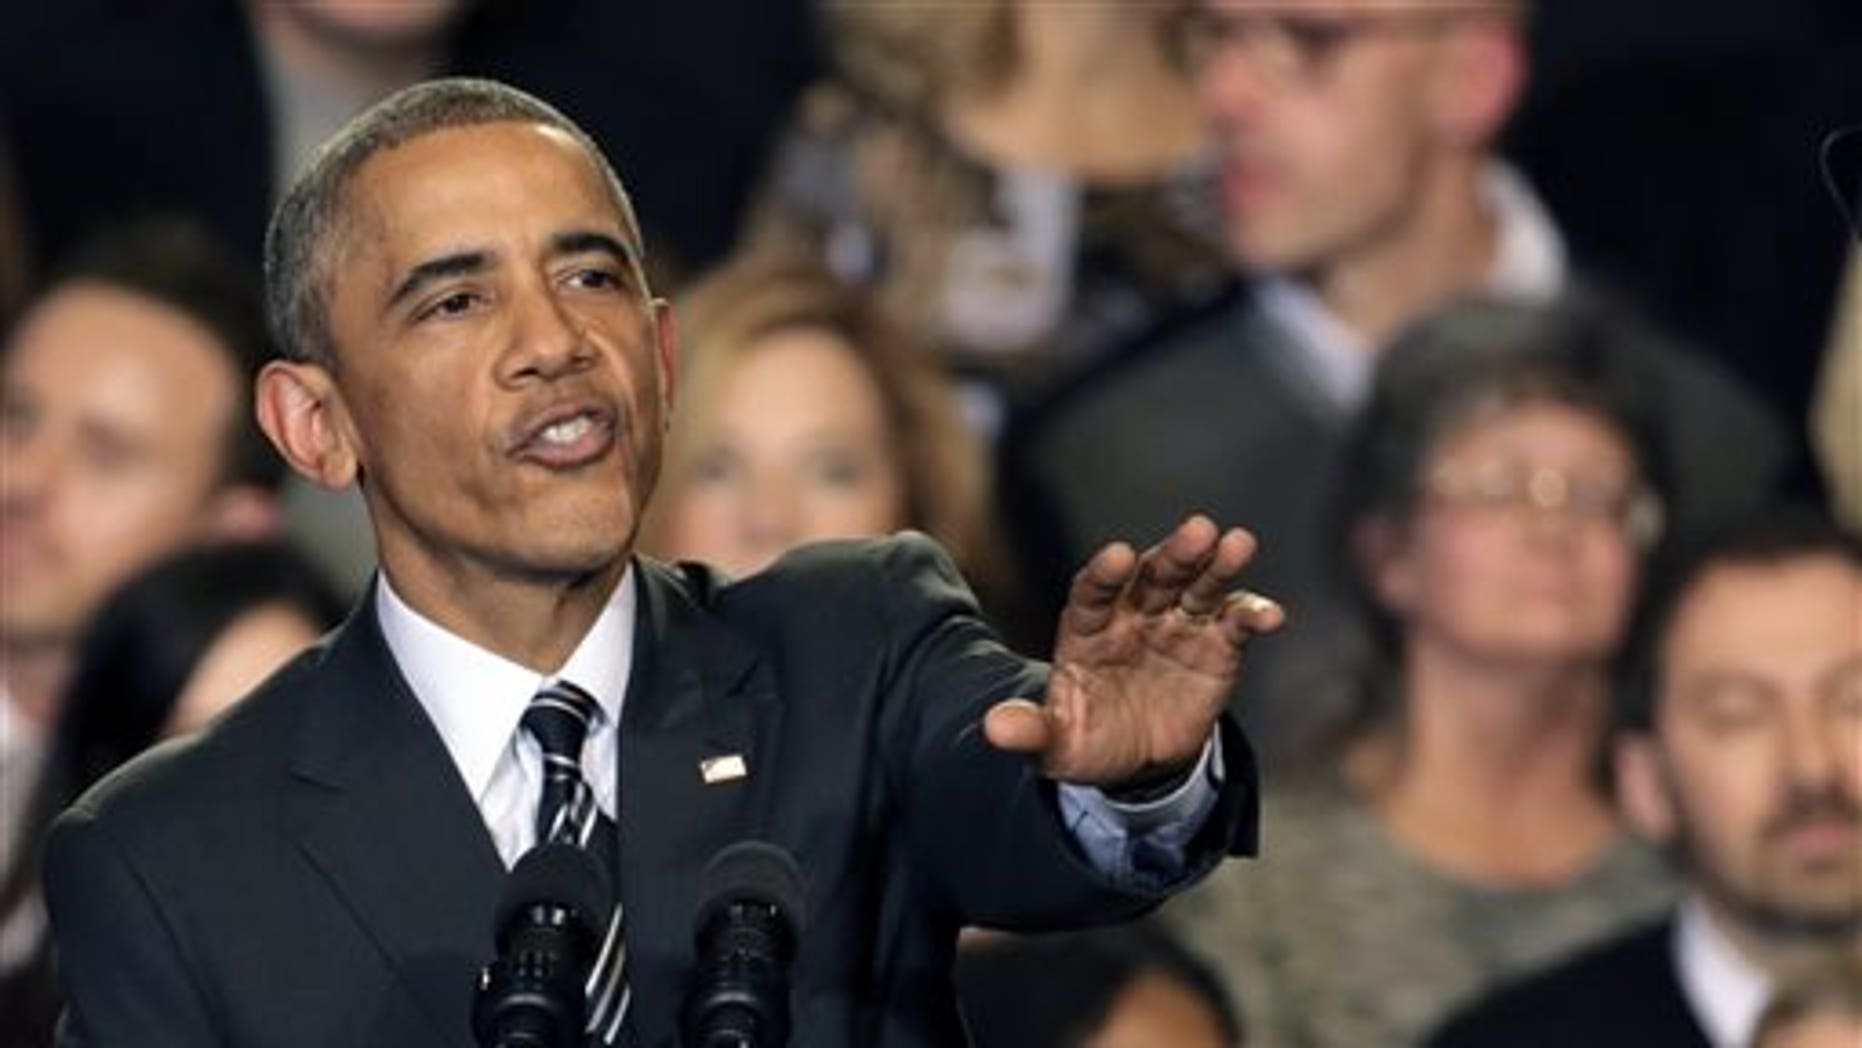 Nov. 25, 2014: President Barack Obama tries to quiet one of three hecklers as he addresses the crowd after meeting with community leaders about the executive actions he is taking to fix the immigration system.